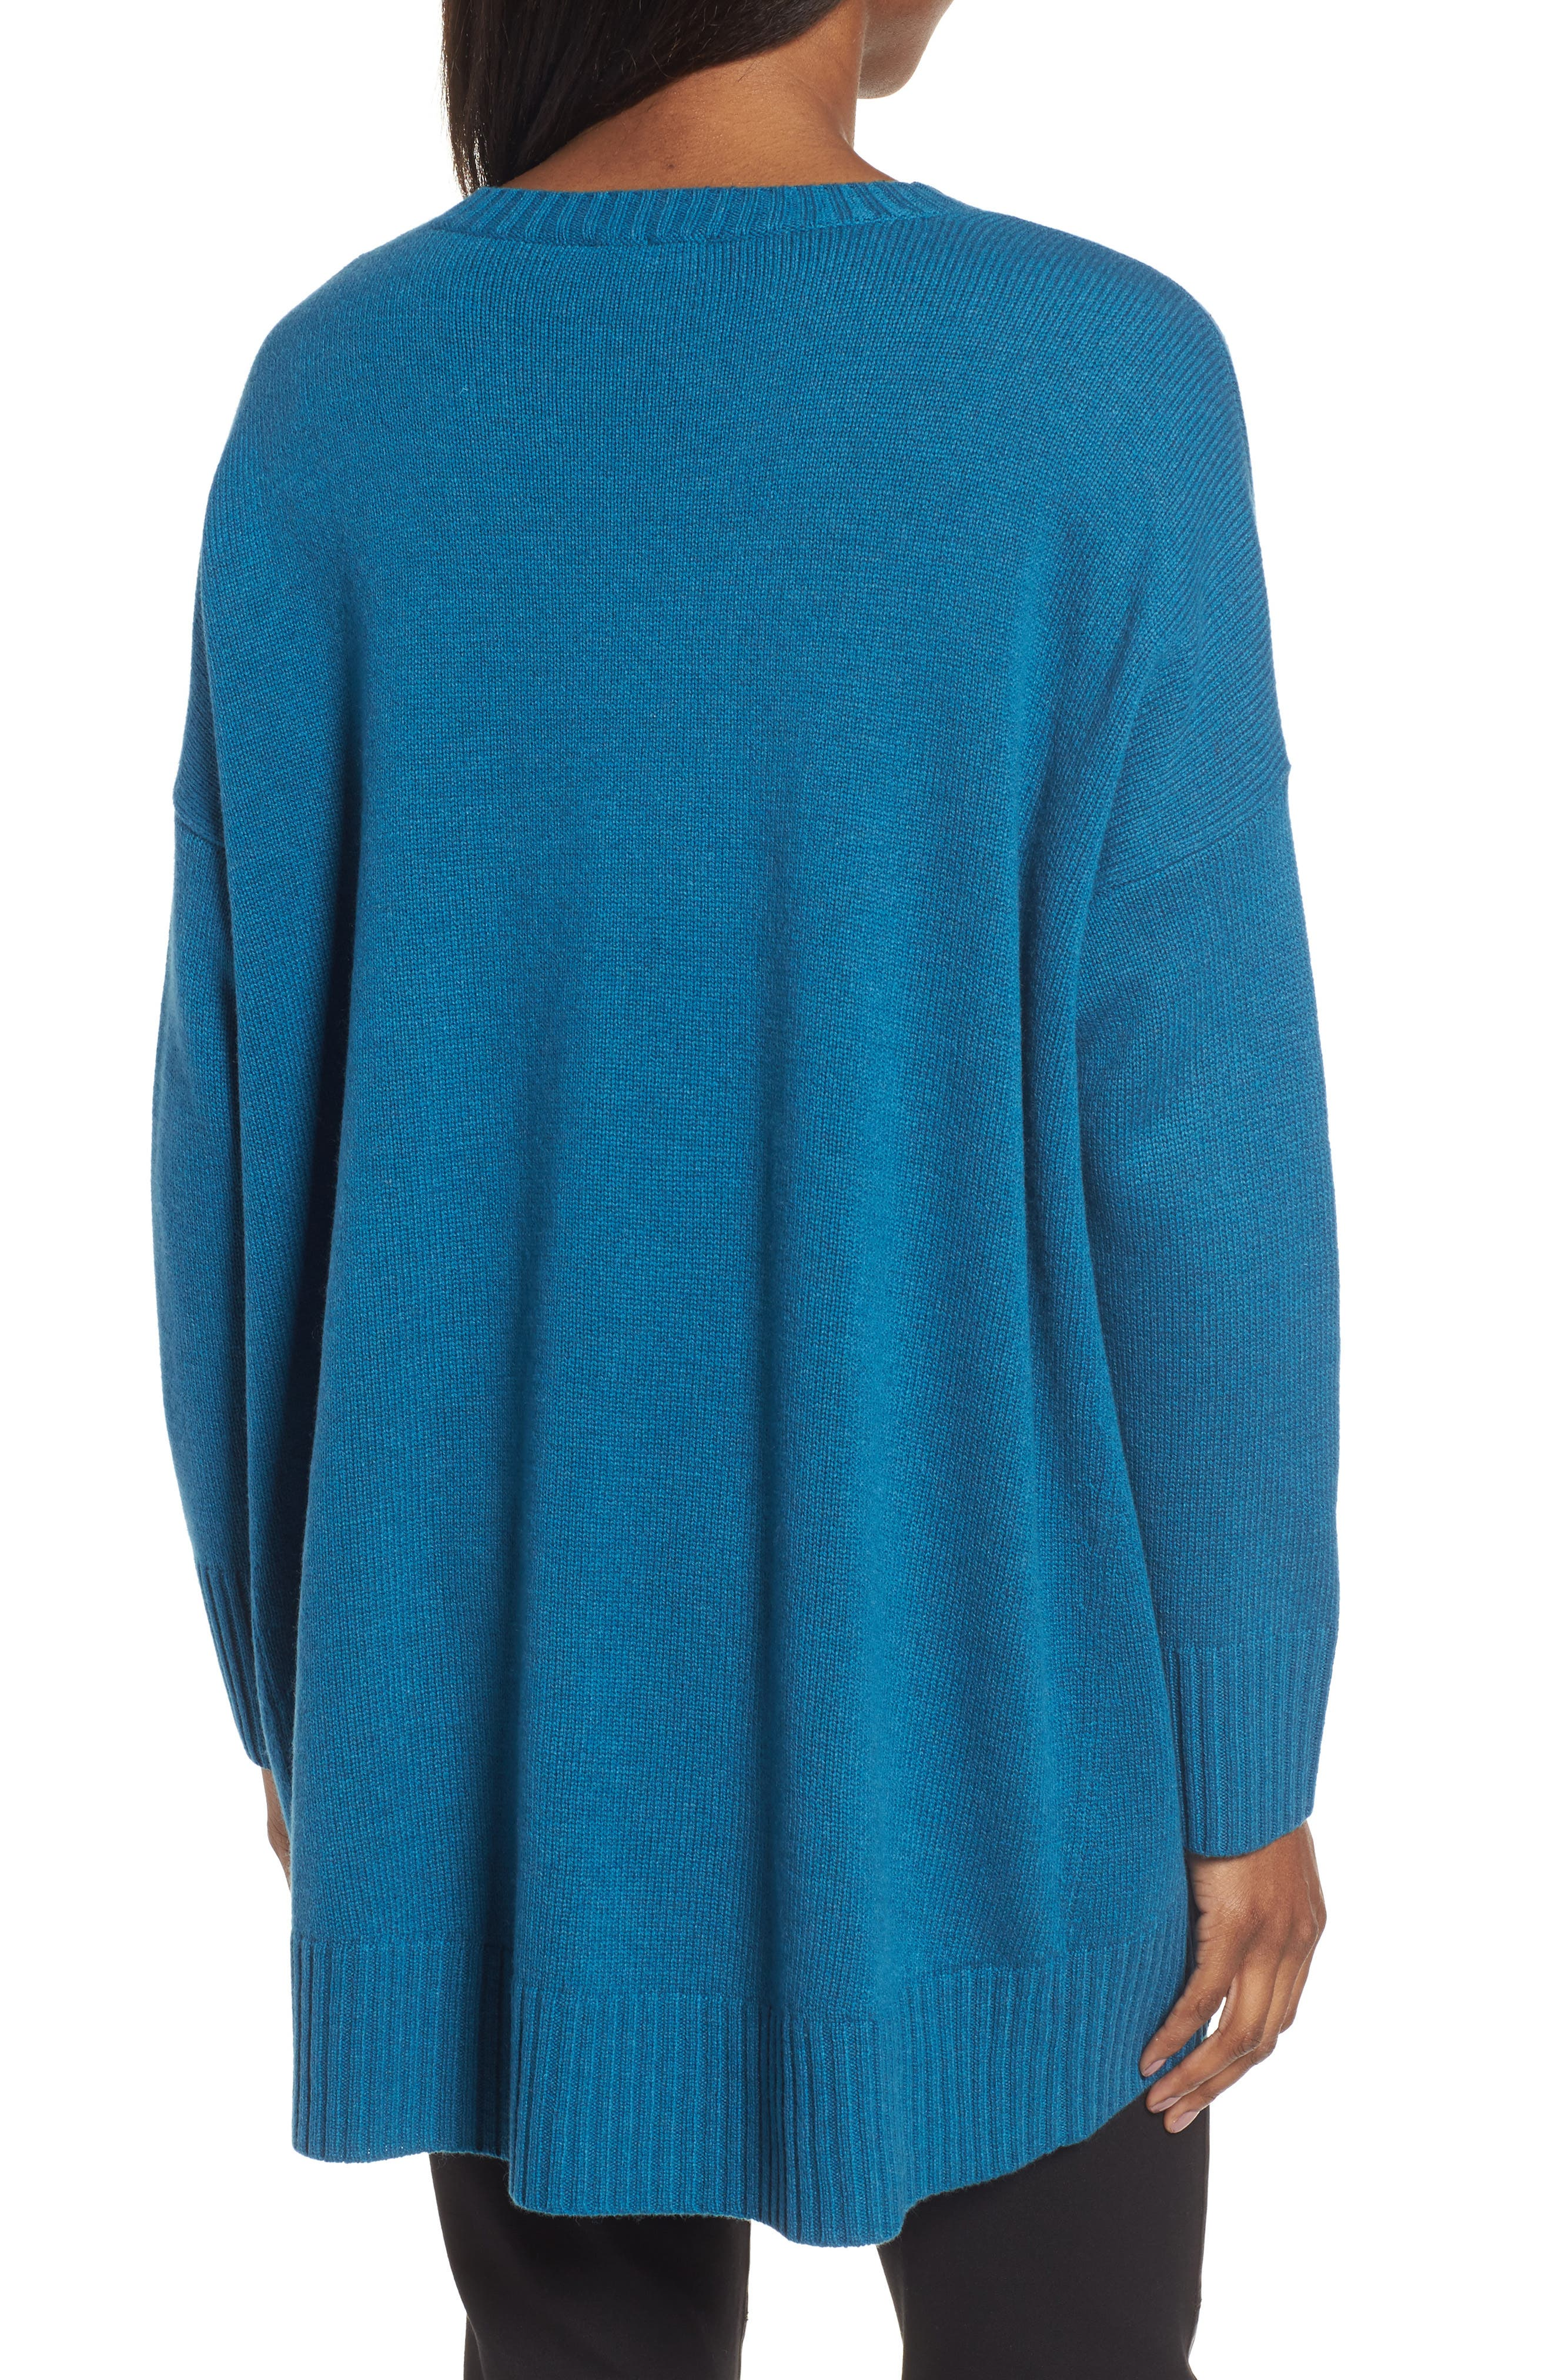 Cashmere & Wool Blend Oversize Sweater,                             Alternate thumbnail 2, color,                             Nile